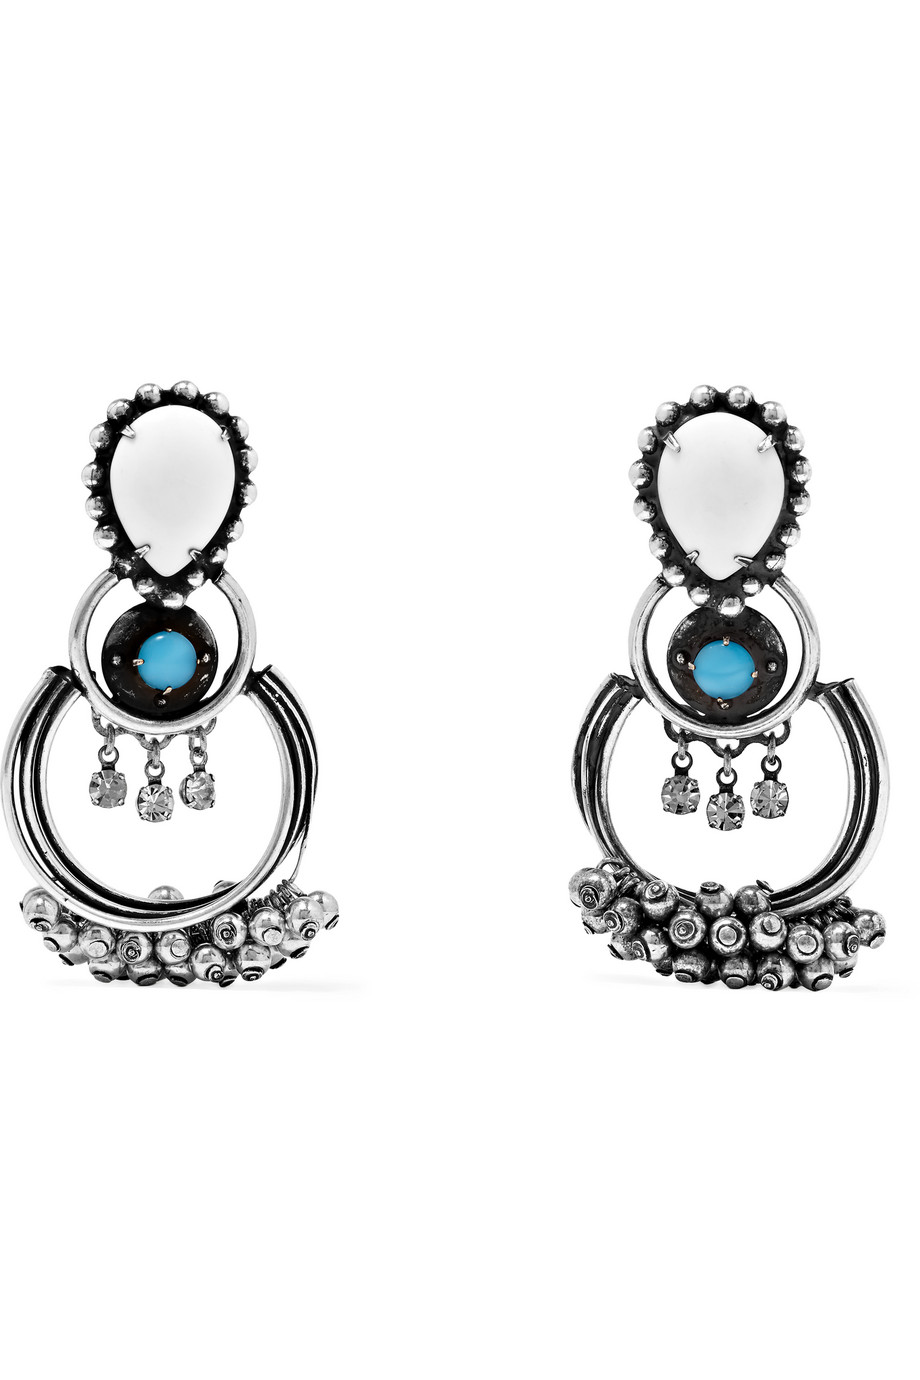 Florence Oxidized Silver-Plated Swarovski Crystal Earrings